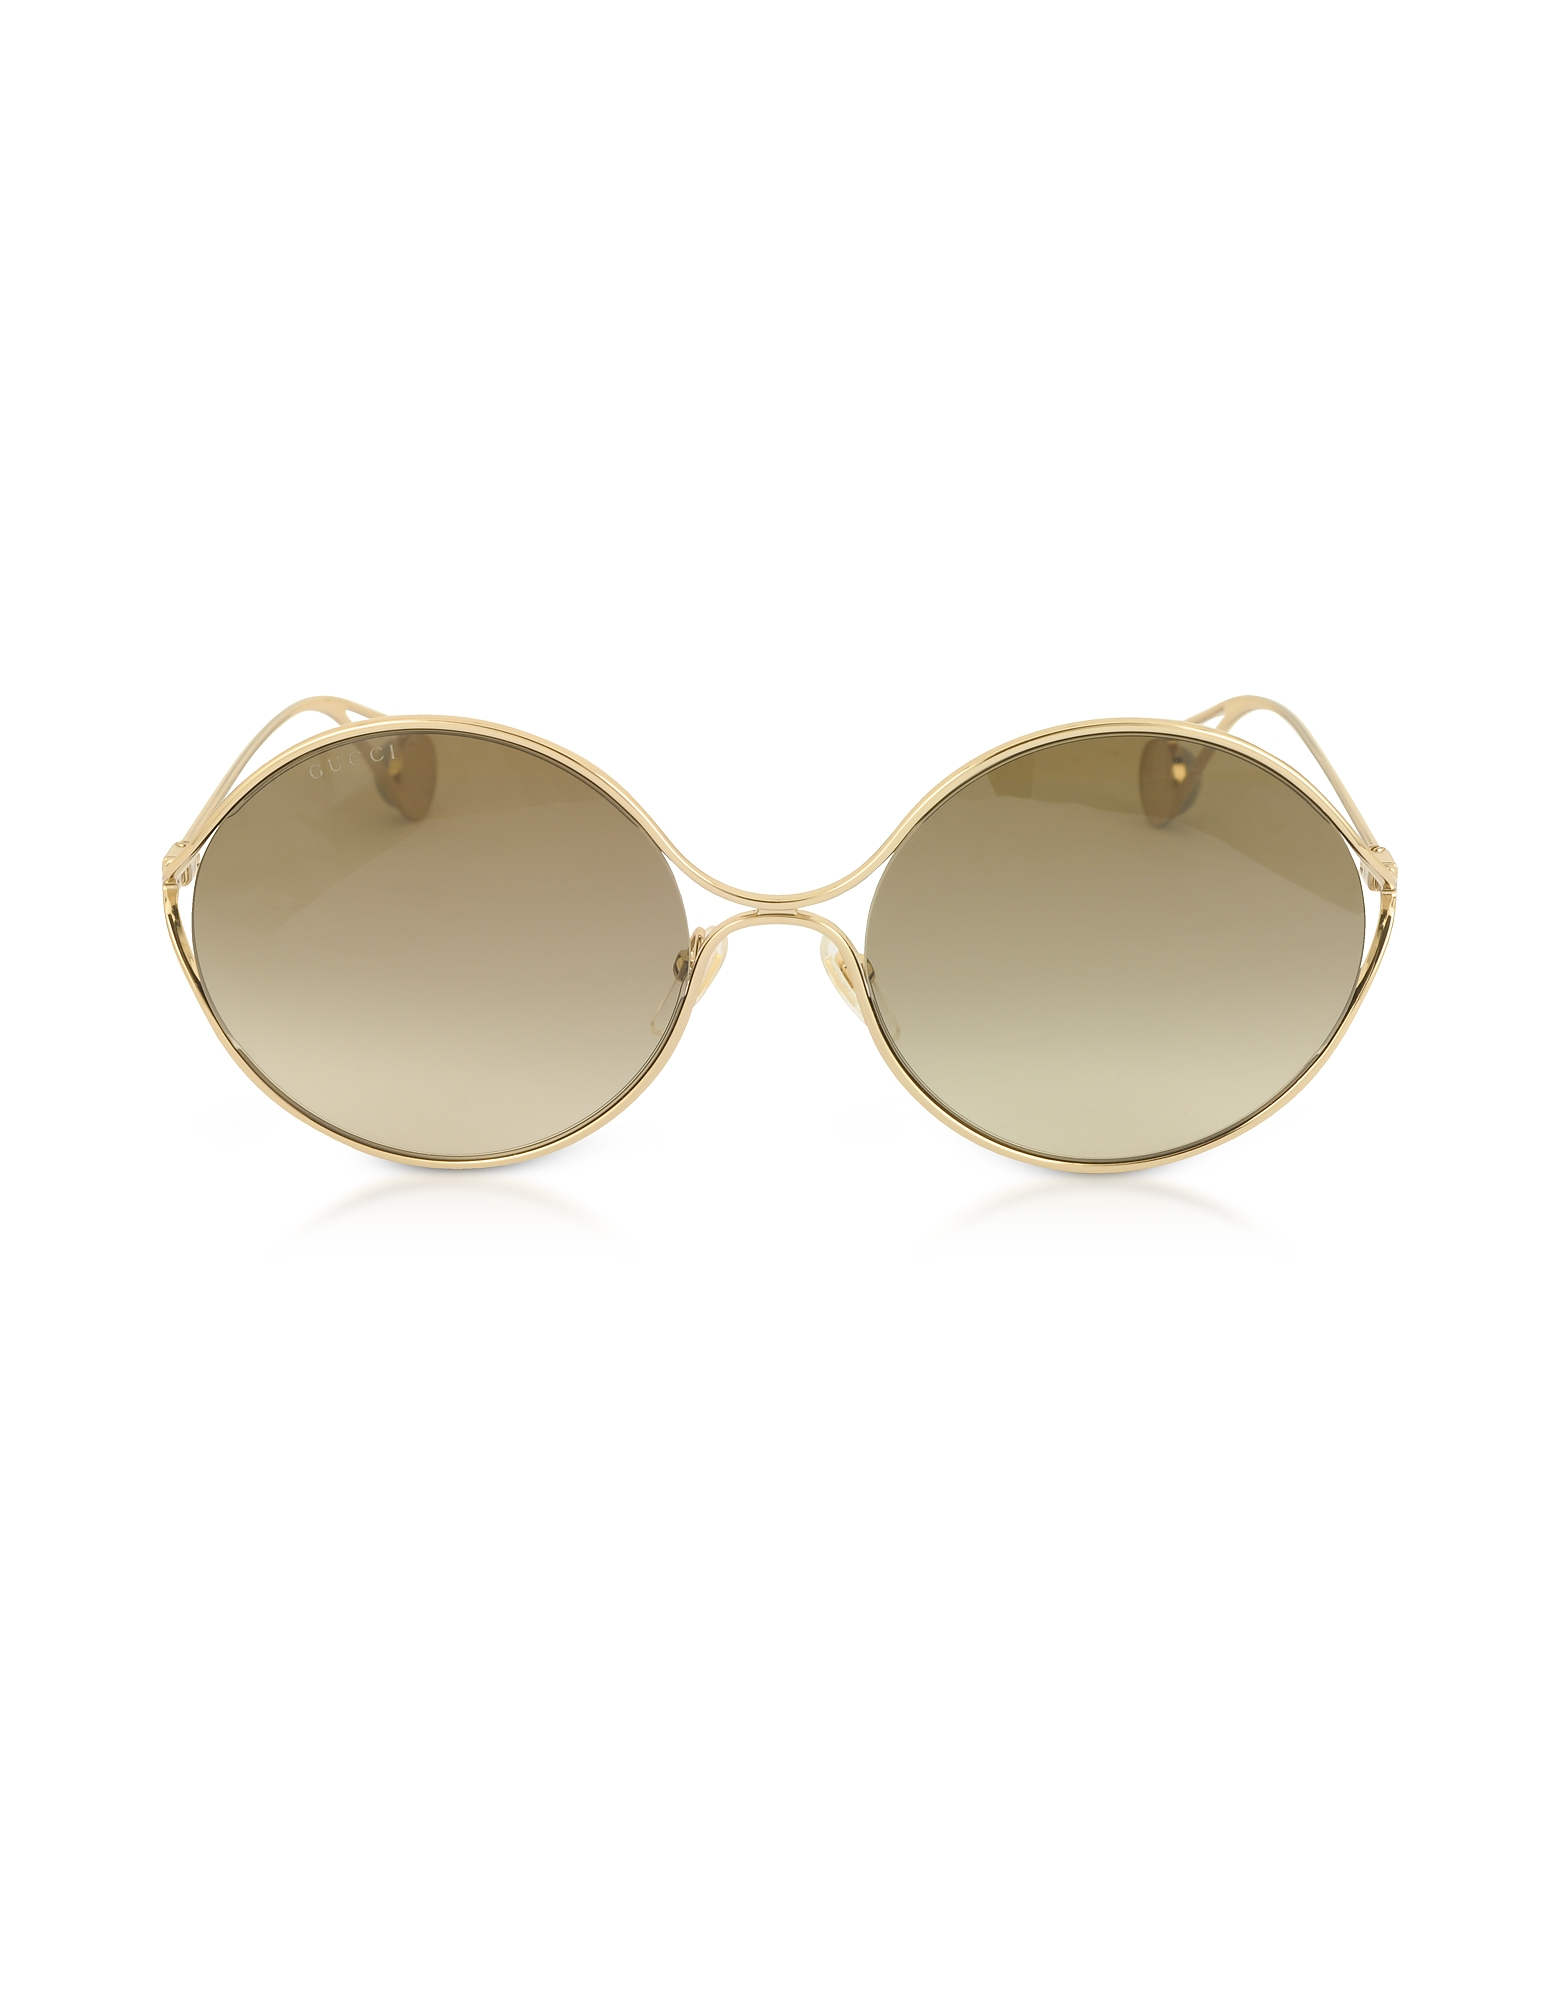 Gucci Sunglasses, GG0253S Round-frame Metal Sunglasses w/GG Pearls